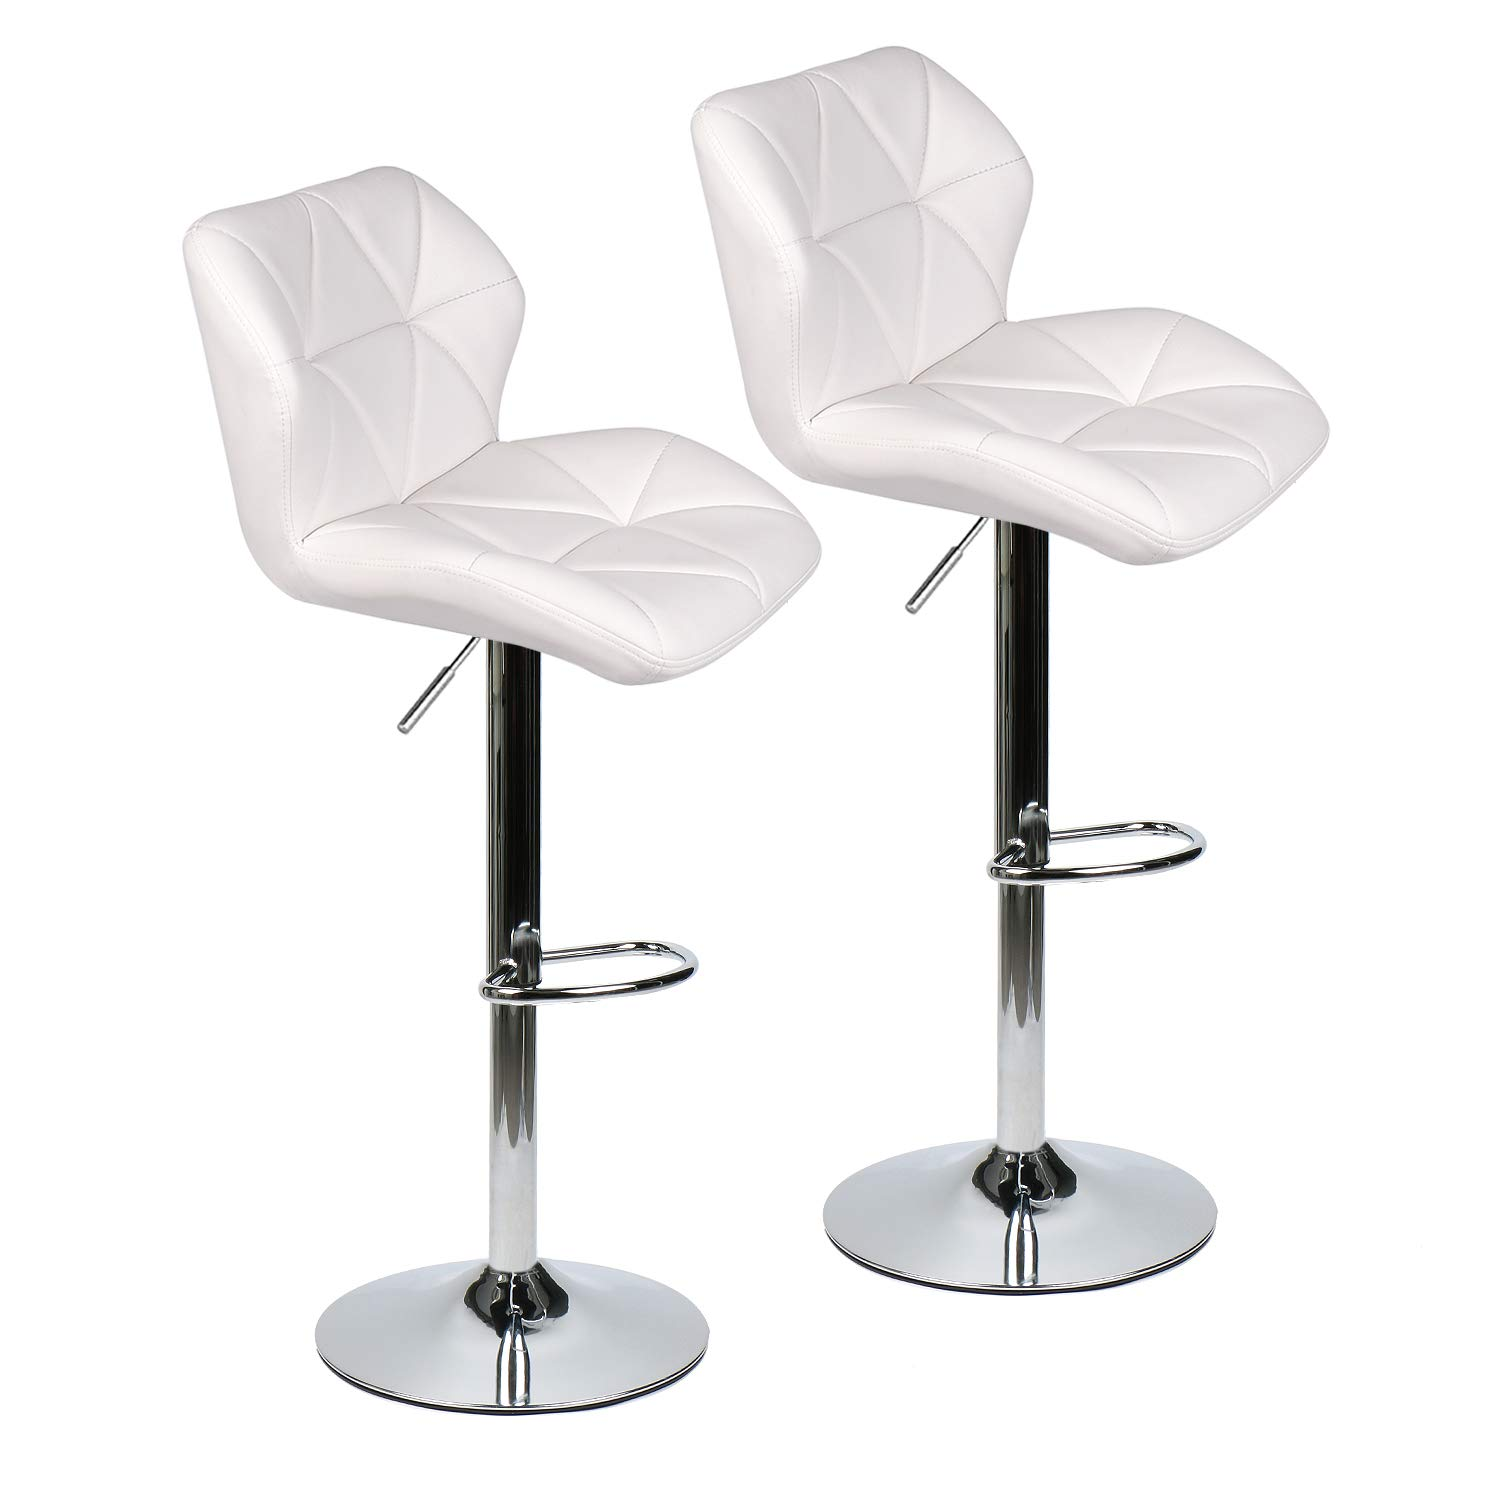 Set of 2 Bar Stools Leather Modern Hydraulic Swivel Dinning Chair Barstools, White by PULUOMIS